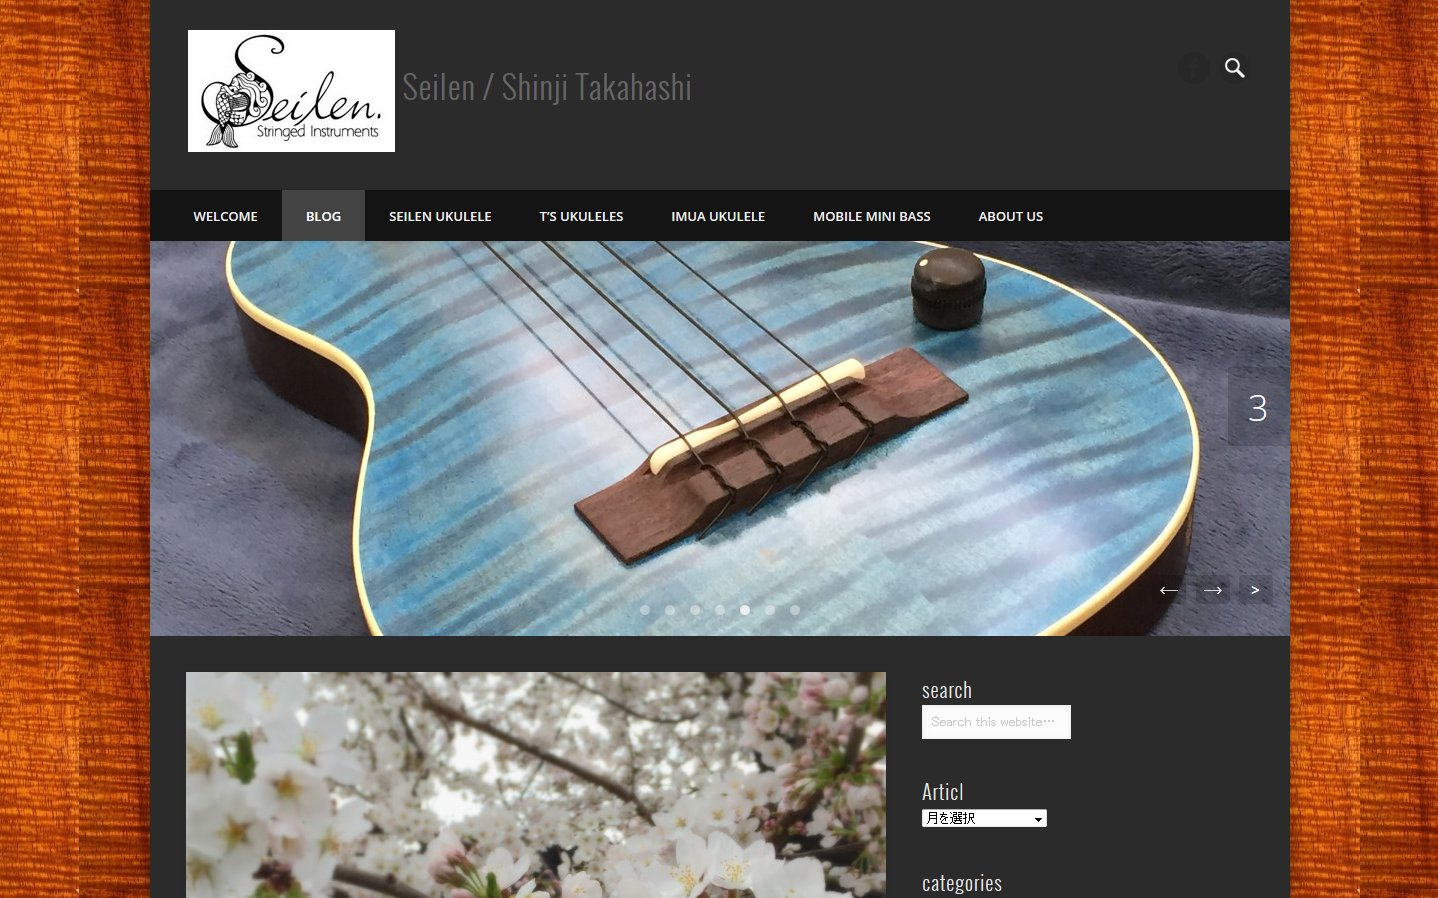 Seilen_website